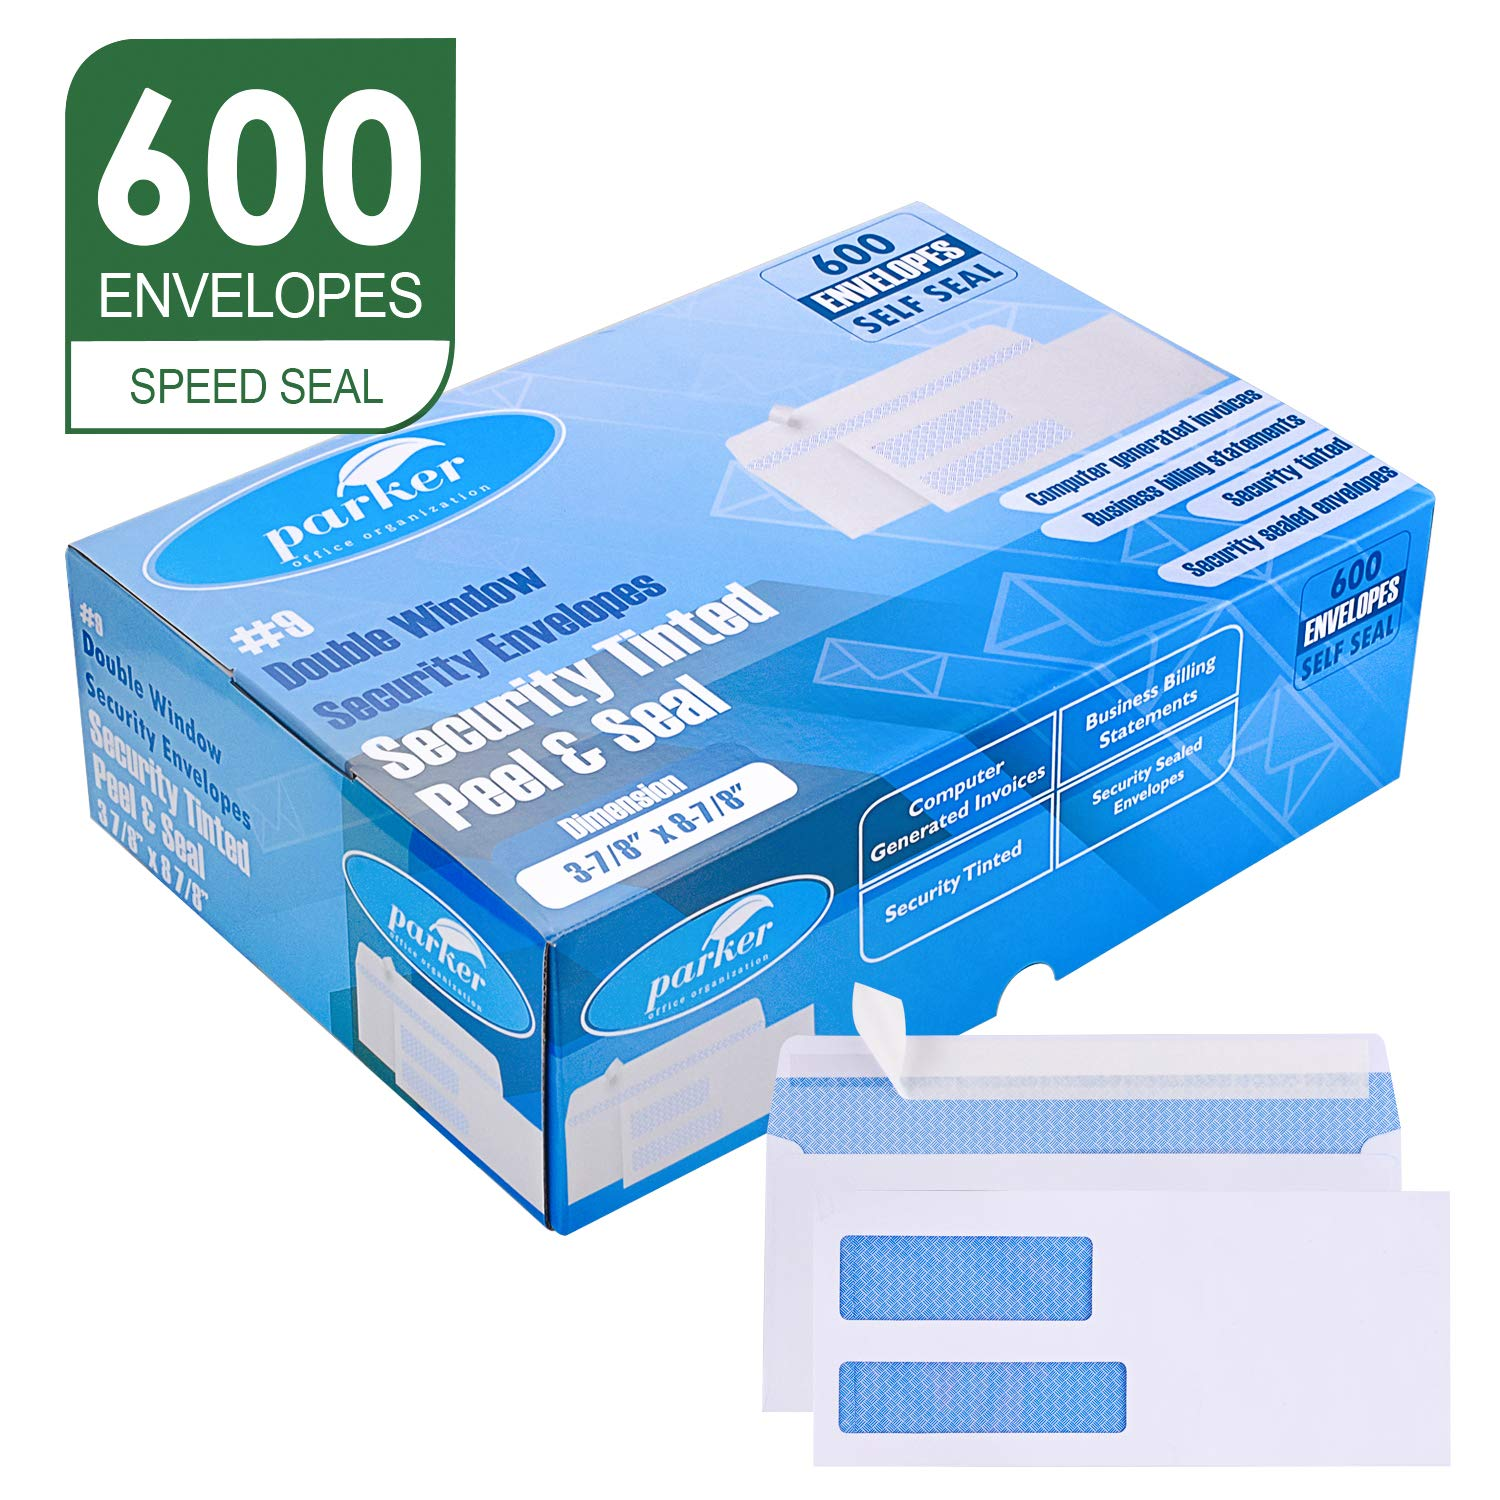 Parker #9 Double Window SELF SEAL Security Envelopes - 600 Per Box - Used for QuickBooks Invoices, Business Correspondence and Legal Documents - Security Tinted - Peel & Seal - 3 7/8'' x 8 7/8'' - 24 LB by Parker Security Envelopes